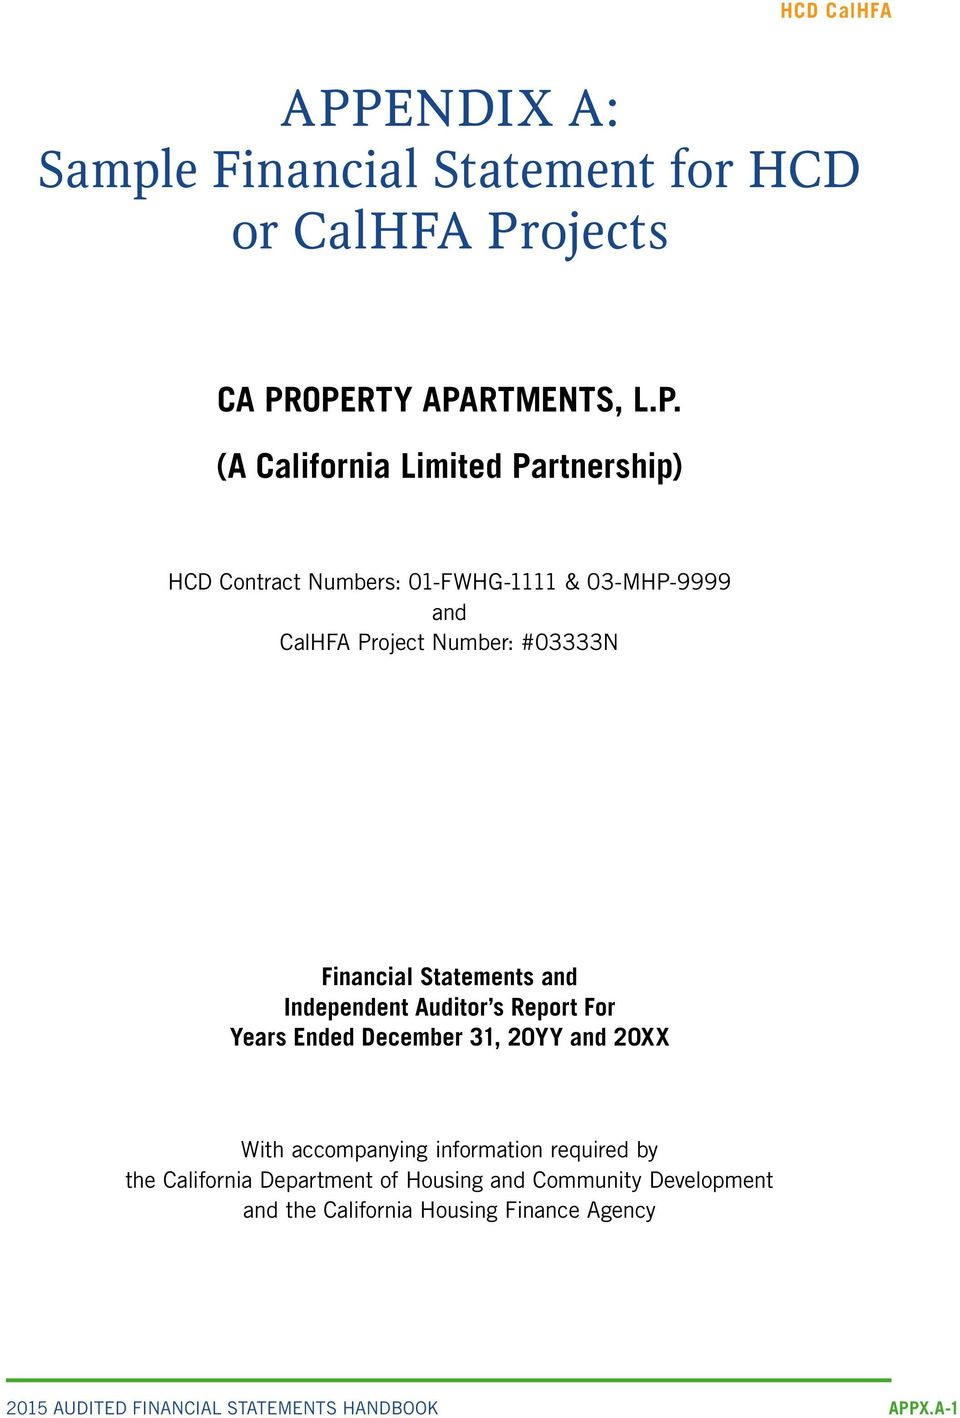 OPERTY APARTMENTS, L.P. (A California Limited Partnership) HCD Contract Numbers: 01-FWHG-1111 & 03-MHP-9999 and